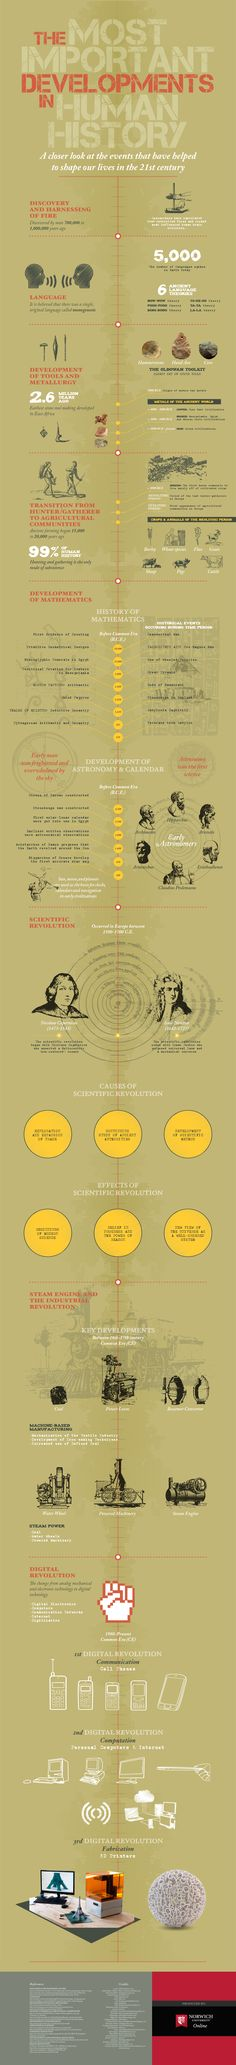 The Most Important Developments in Human History #Infographics — Lightscap3s.com